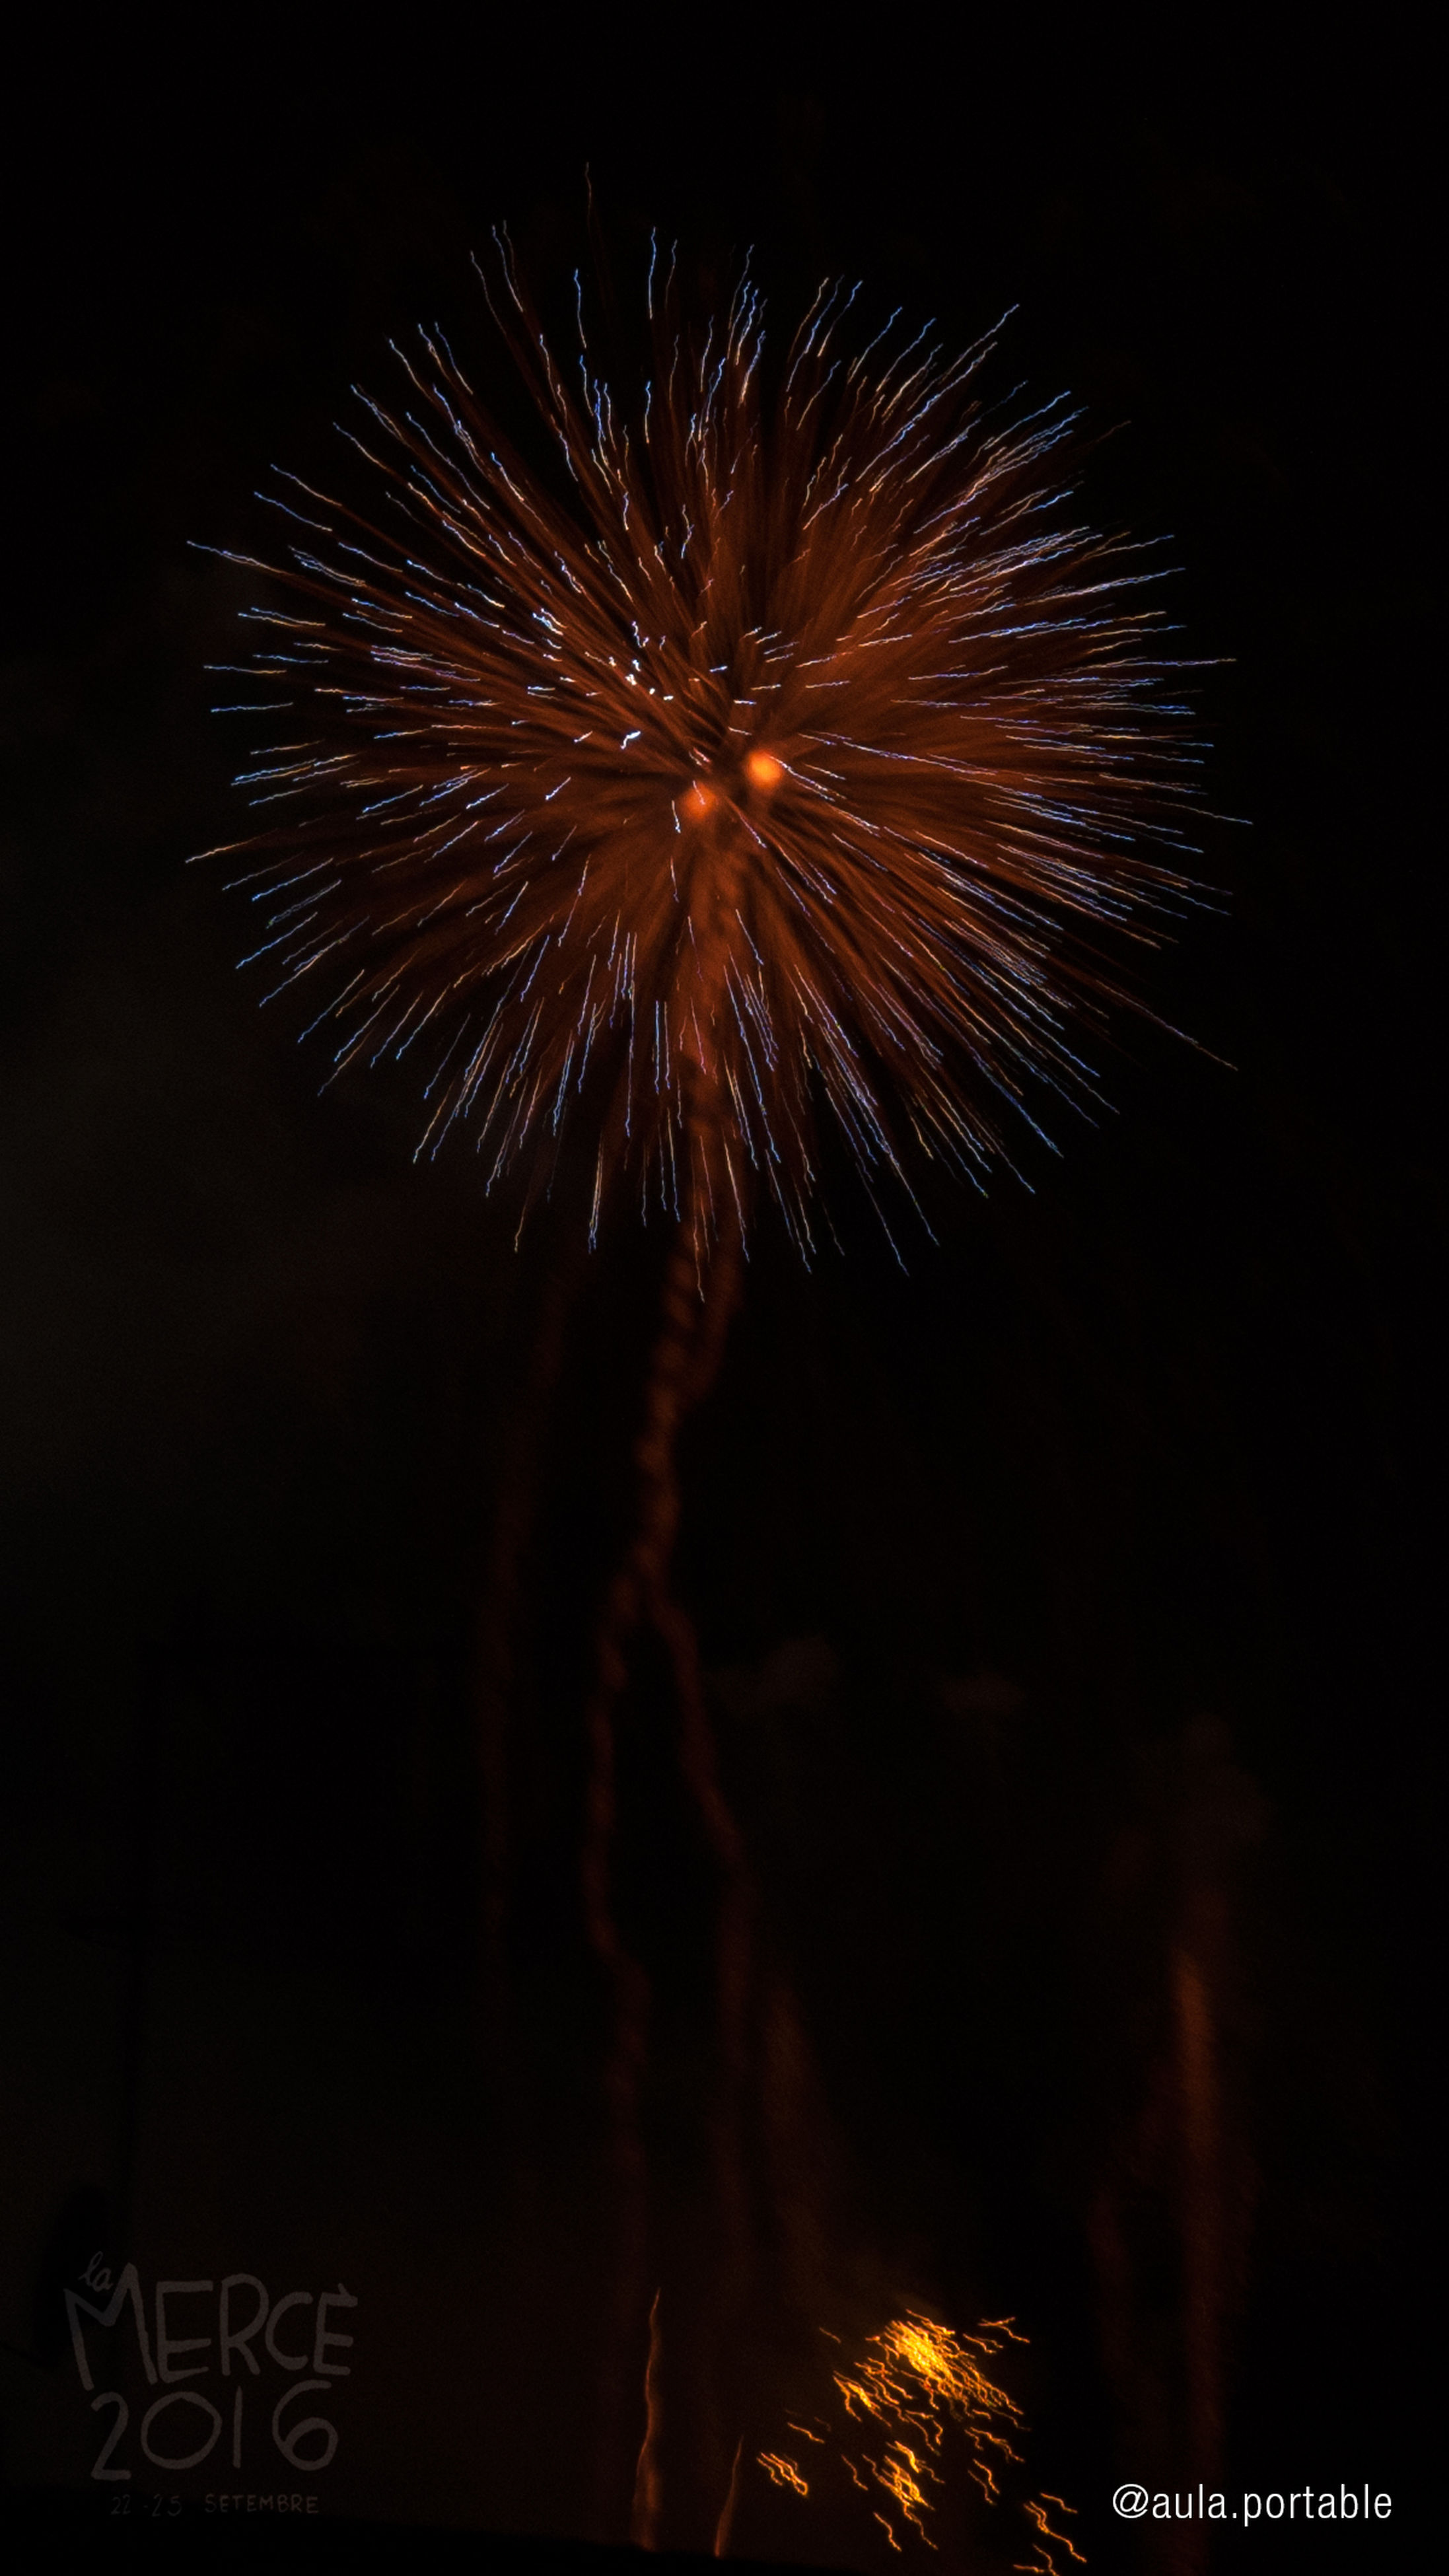 low angle view, night, motion, firework display, celebration, exploding, sky, glowing, long exposure, illuminated, outdoors, firework - man made object, firework, dark, scenics, sparks, event, entertainment, multi colored, tranquility